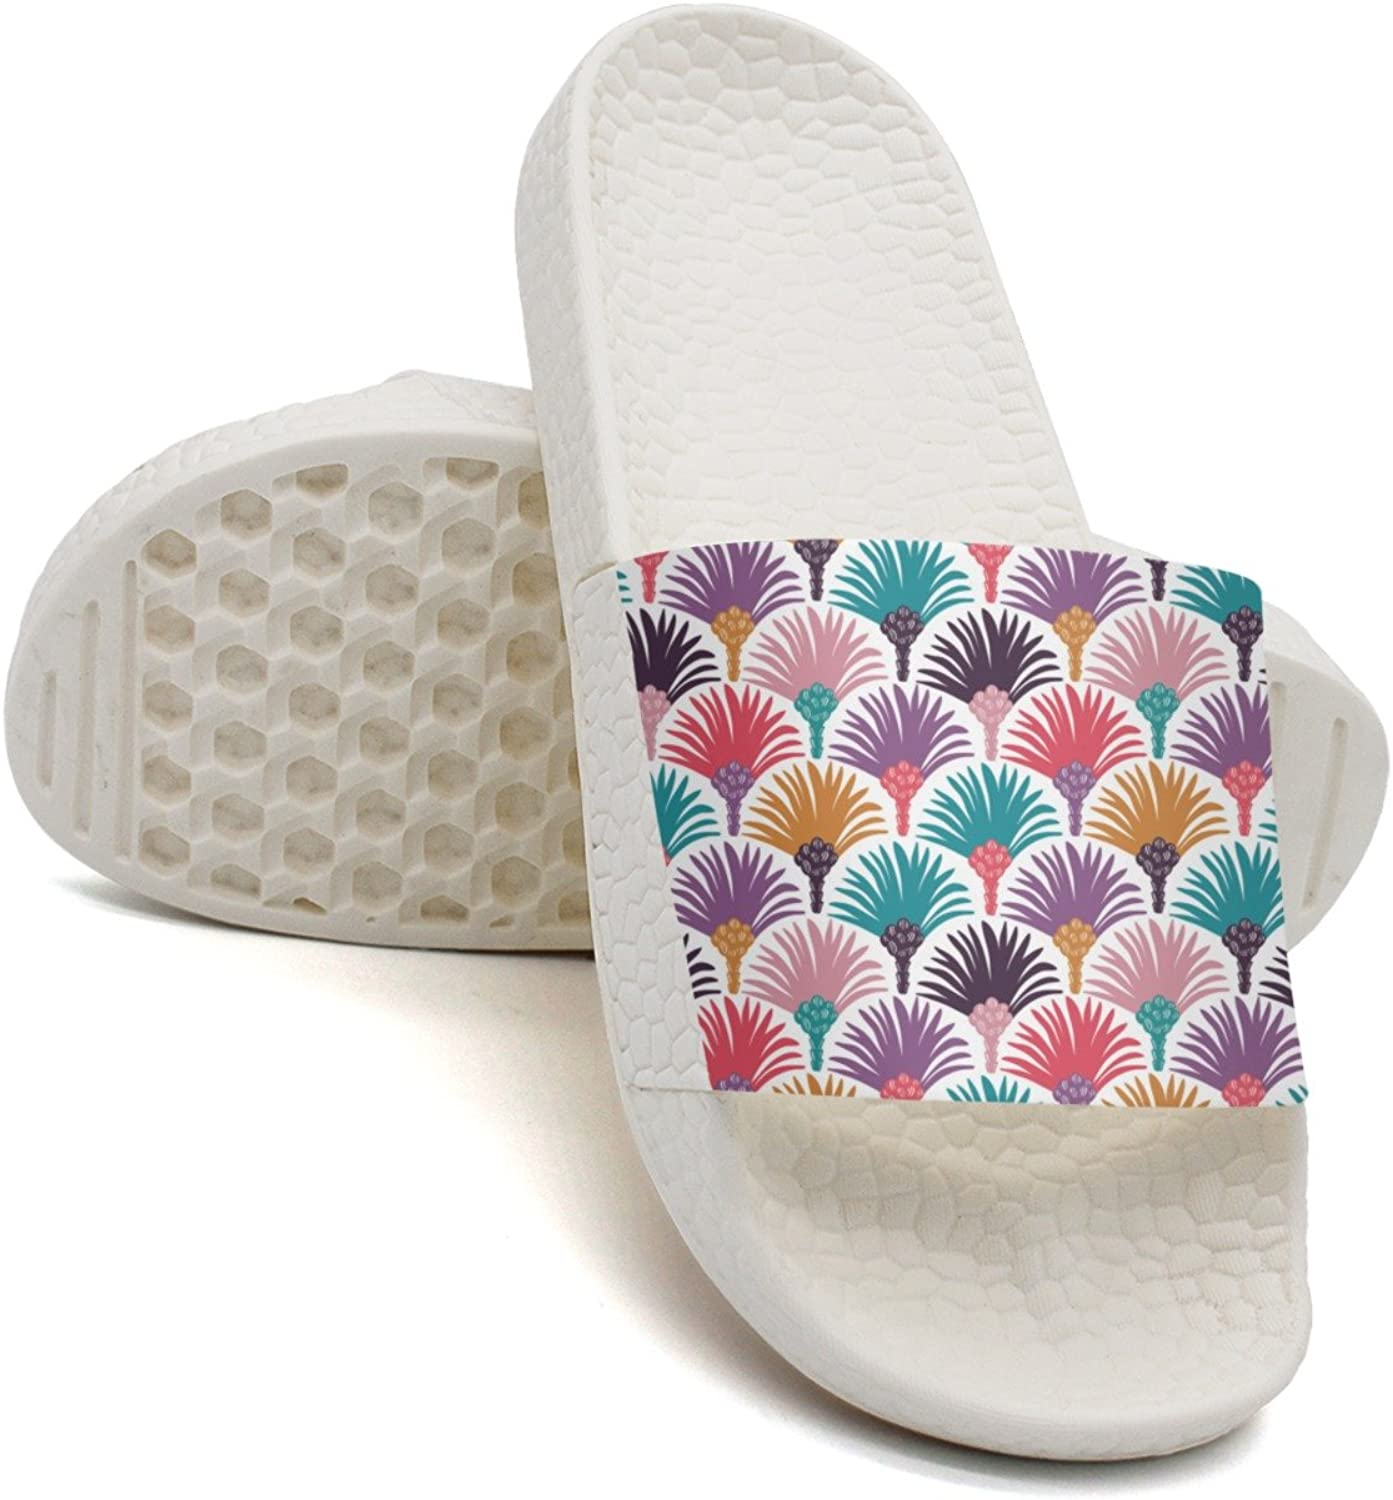 Qiopw rtw Bathroom Shower Non-Slip Sandal Coloful Royal Palm Tree Indoor Slipper shoes for Womens